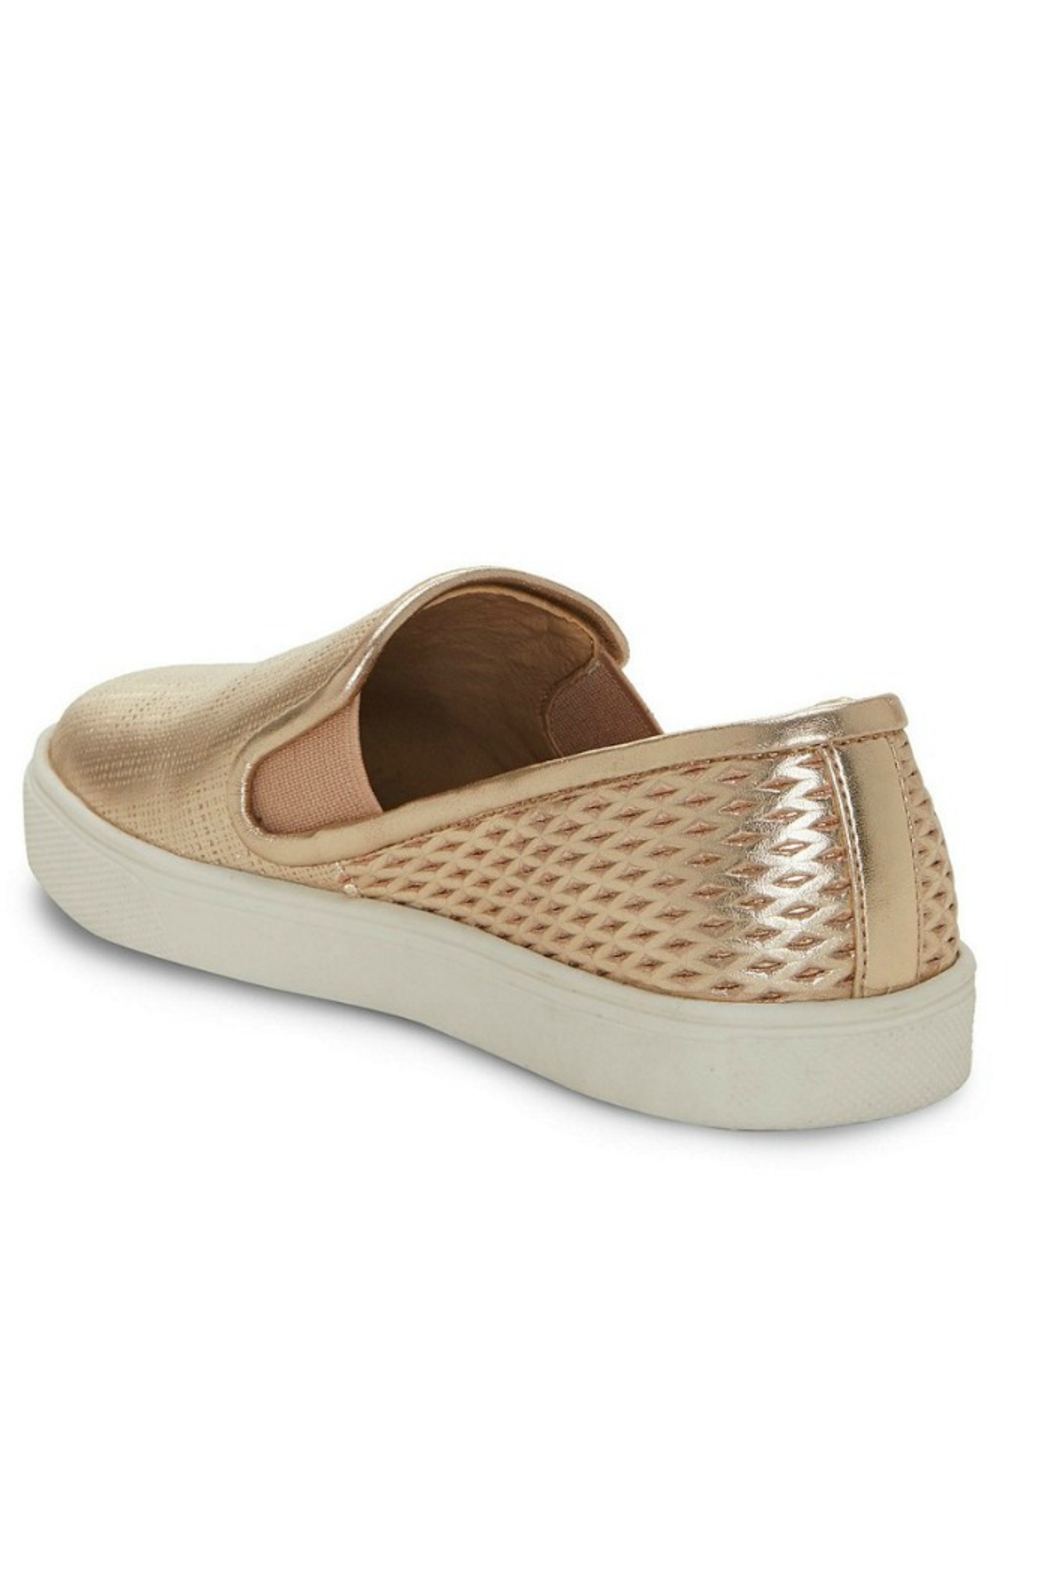 Vince Camuto Bestina Vincent Camuto - Side Cropped Image